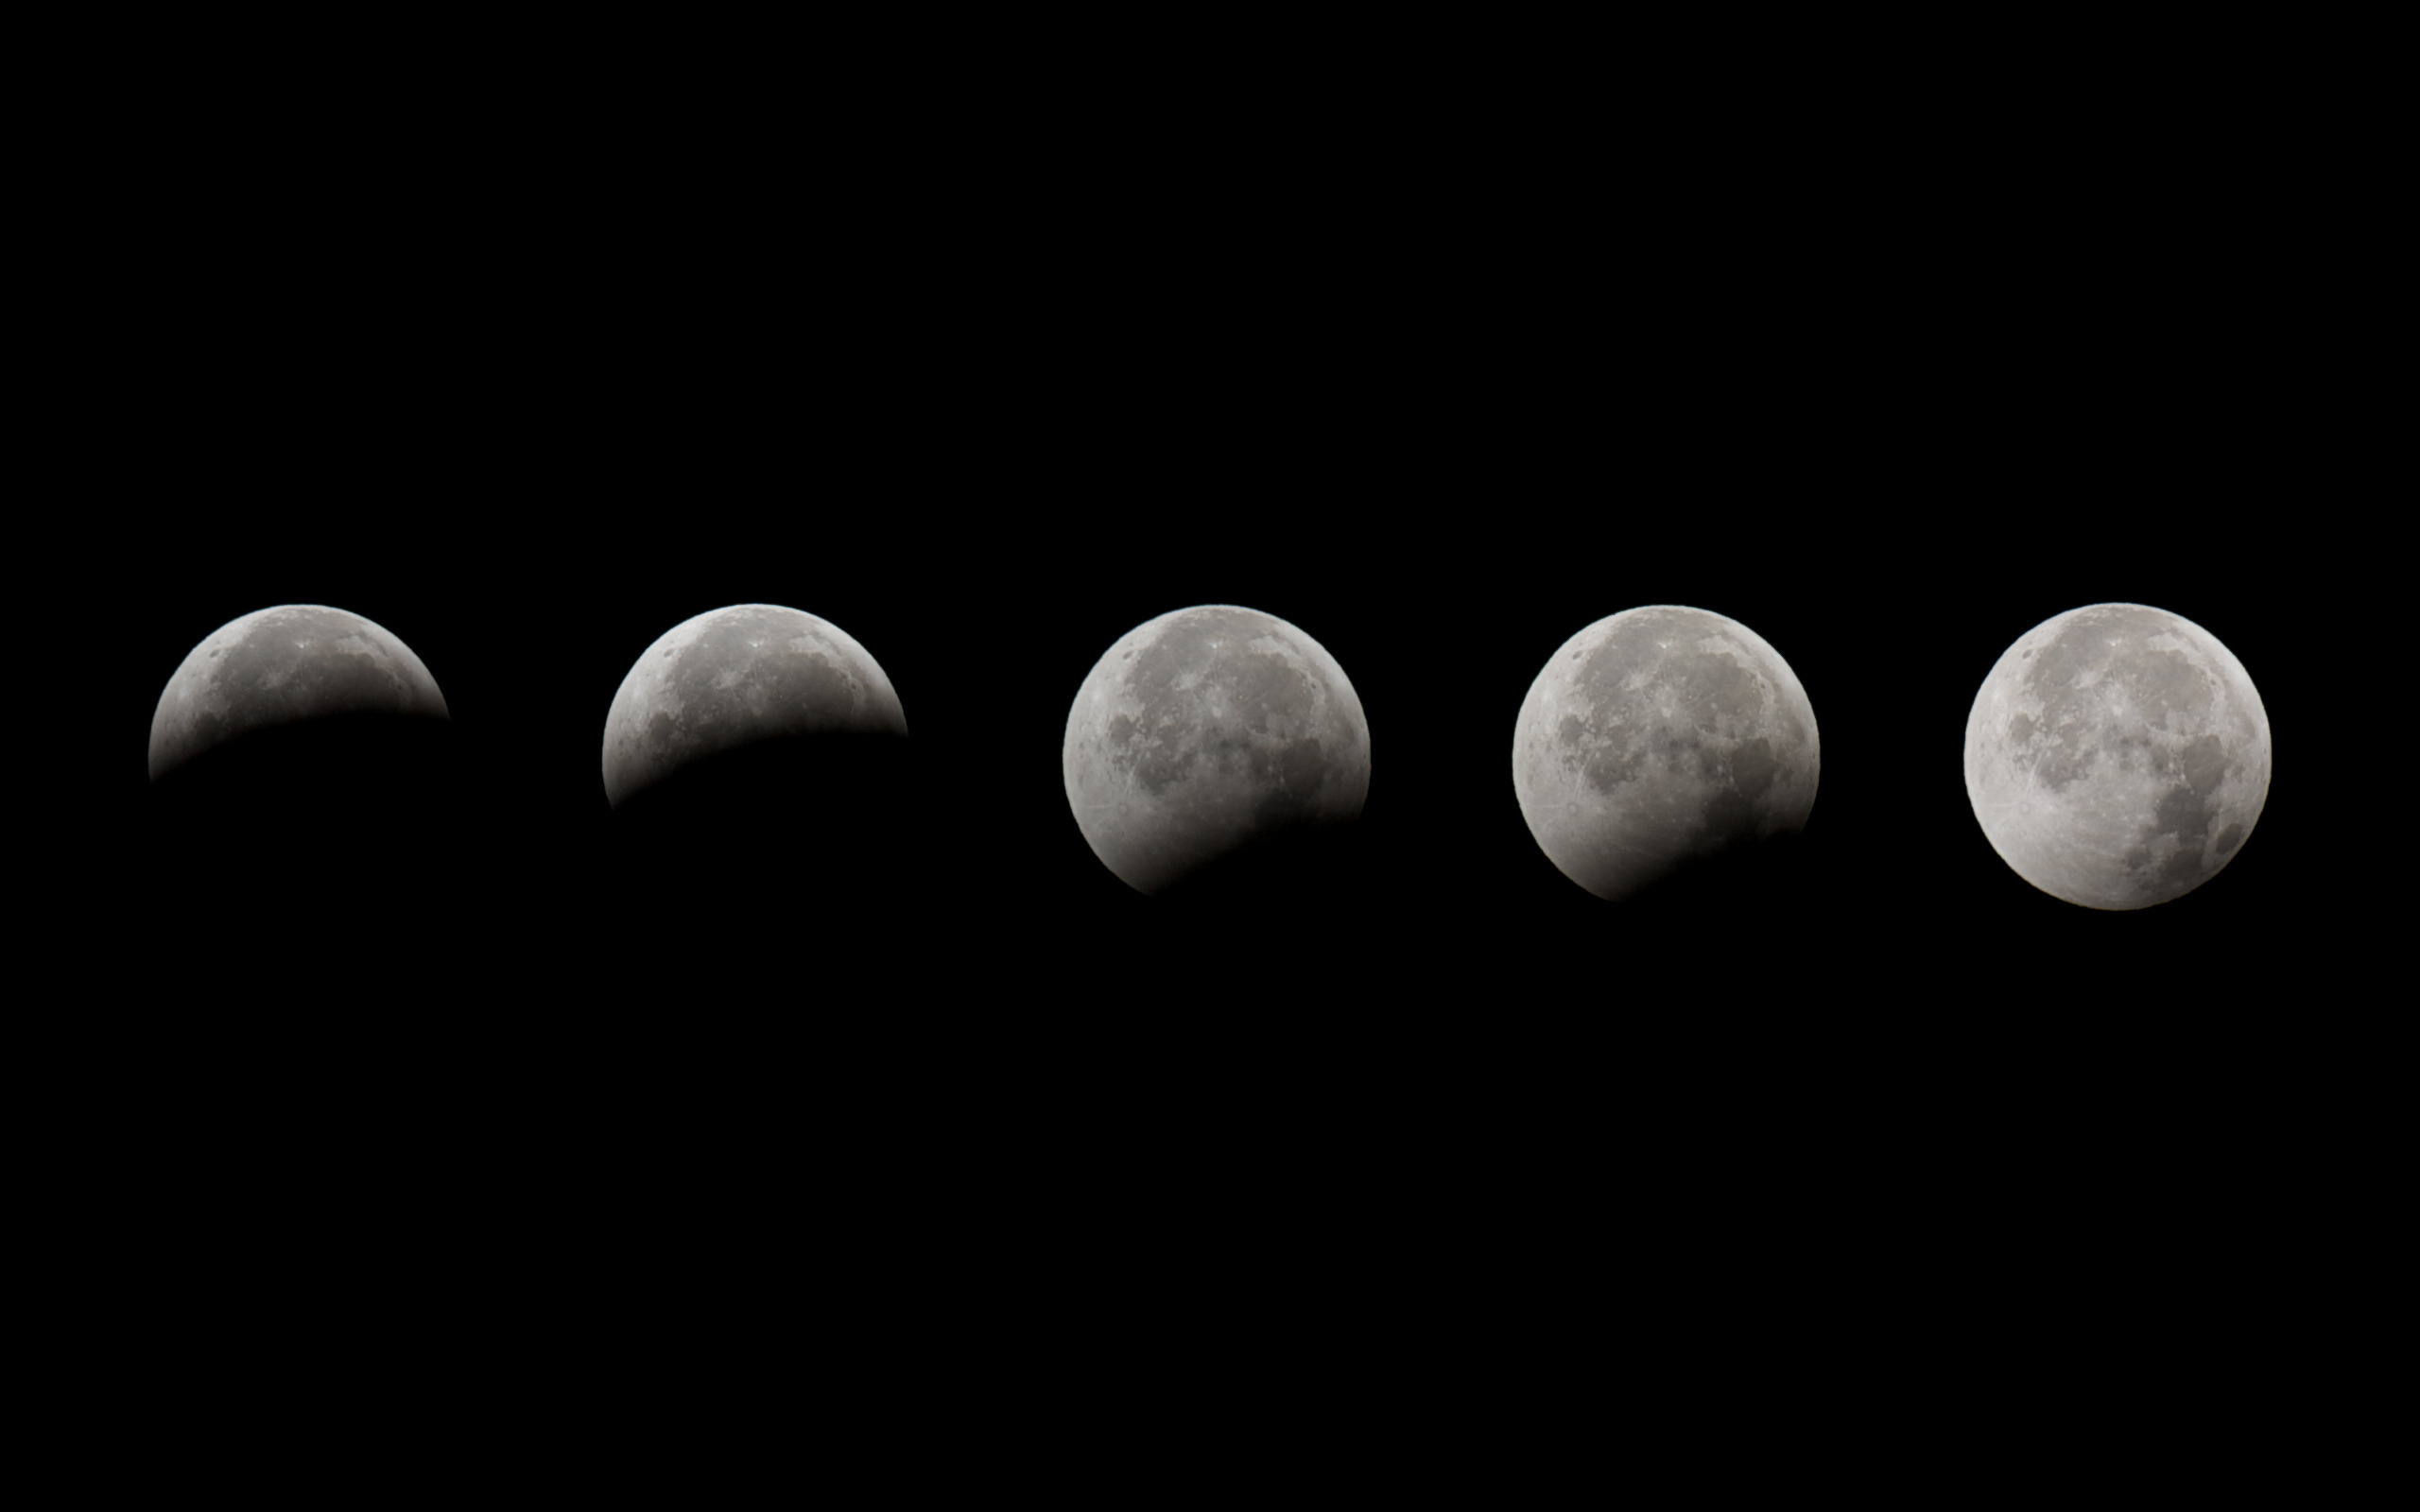 Wallpaper Space, Moon, Night, Lunar Eclipse, Eclipse, Moon Phases